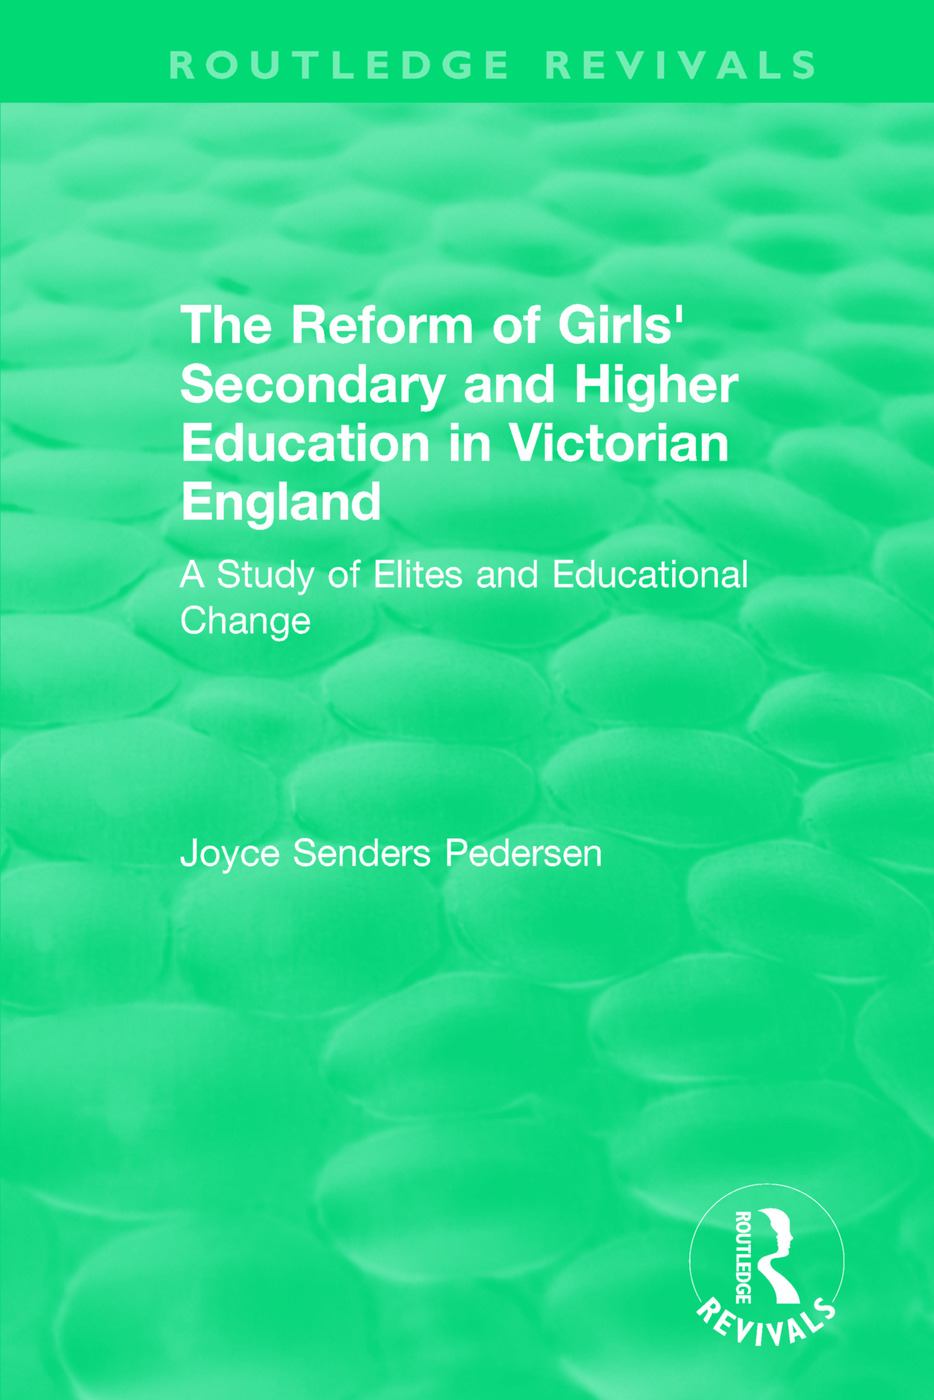 The Reform of Girls' Secondary and Higher Education in Victorian England: A Study of Elites and Educational Change book cover